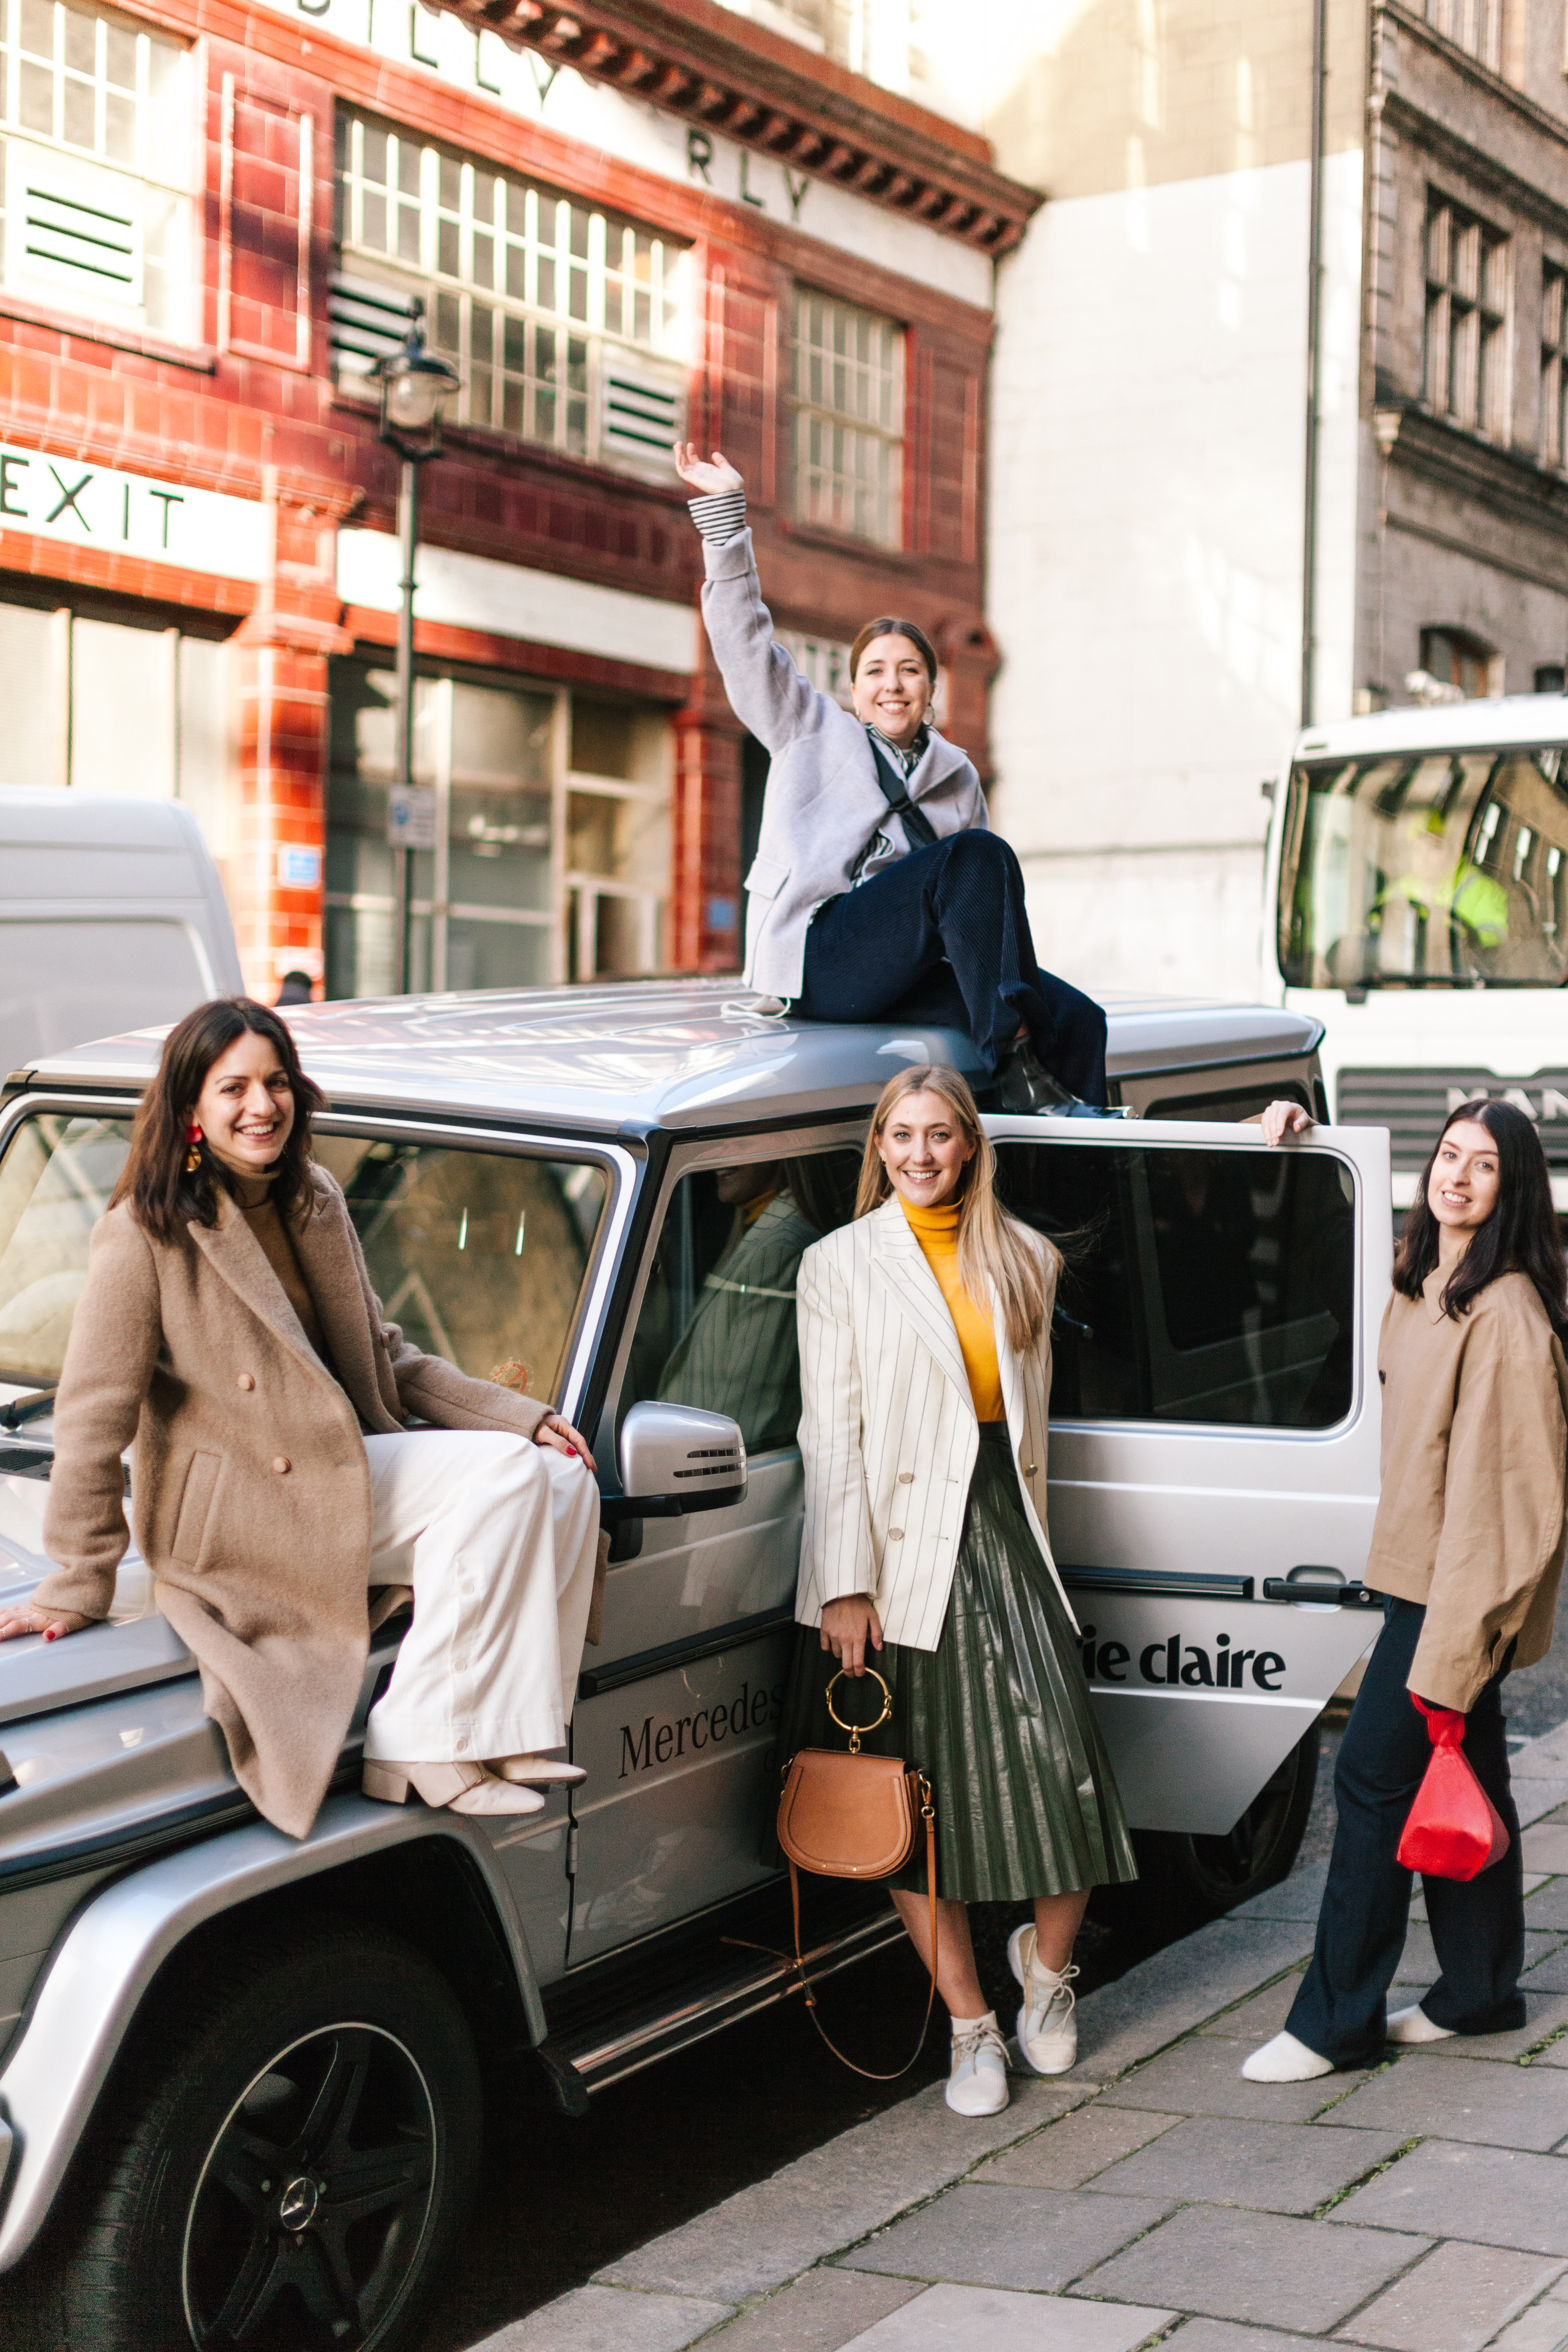 LFW Video: The Marie Claire Fashion Team In The Christian Louboutin Tribaloubi Car